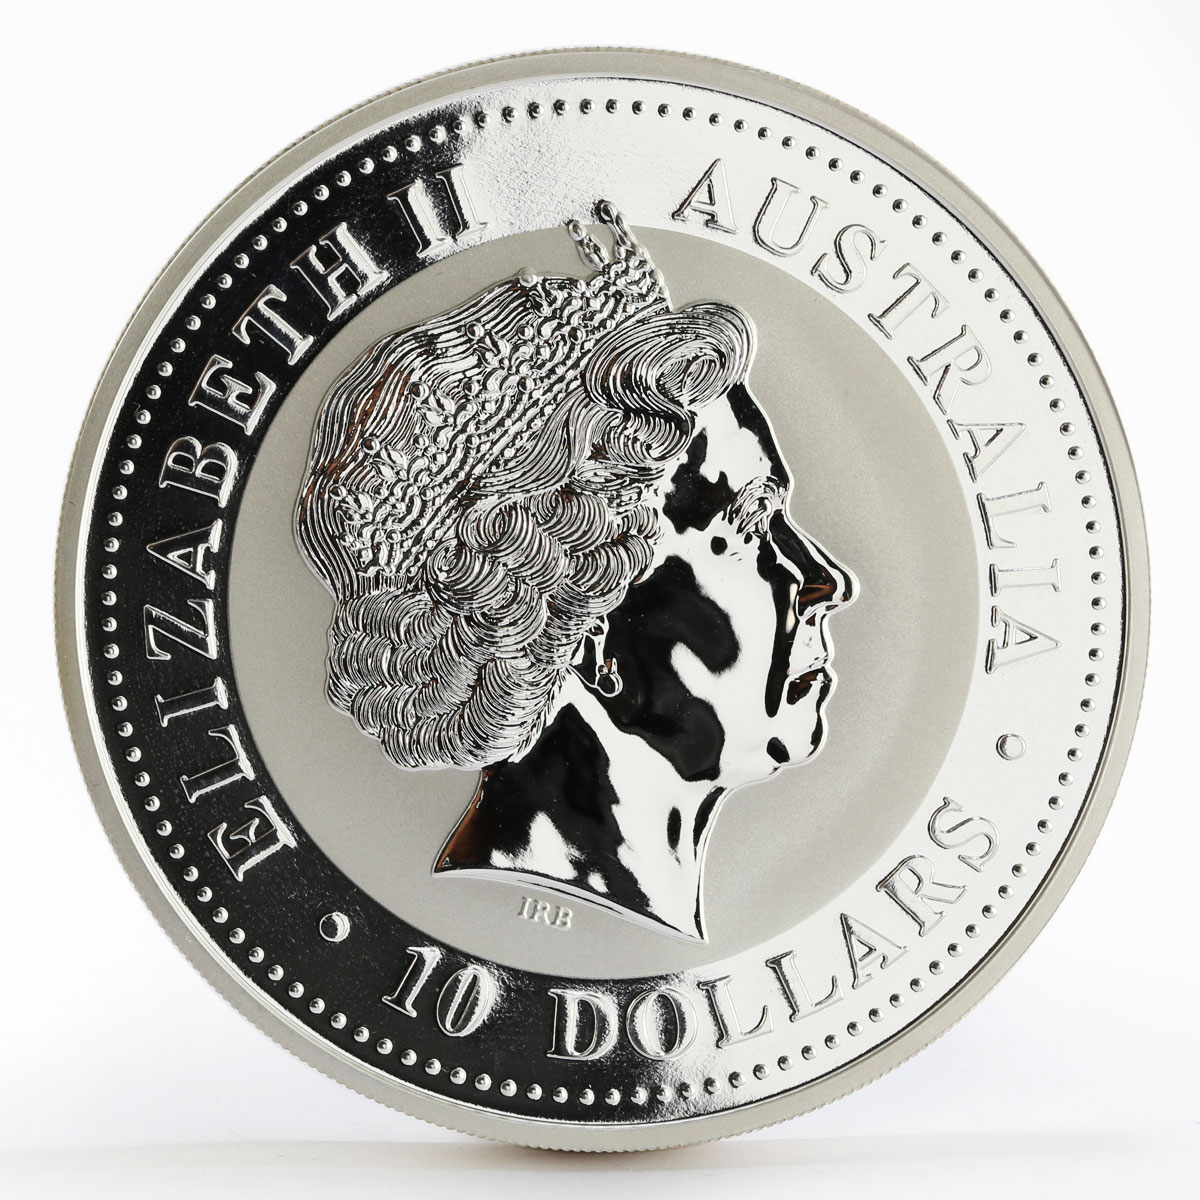 Australia 10 dollars Year of the Dog Lunnar Series I 10 oz Silver Coin 2006